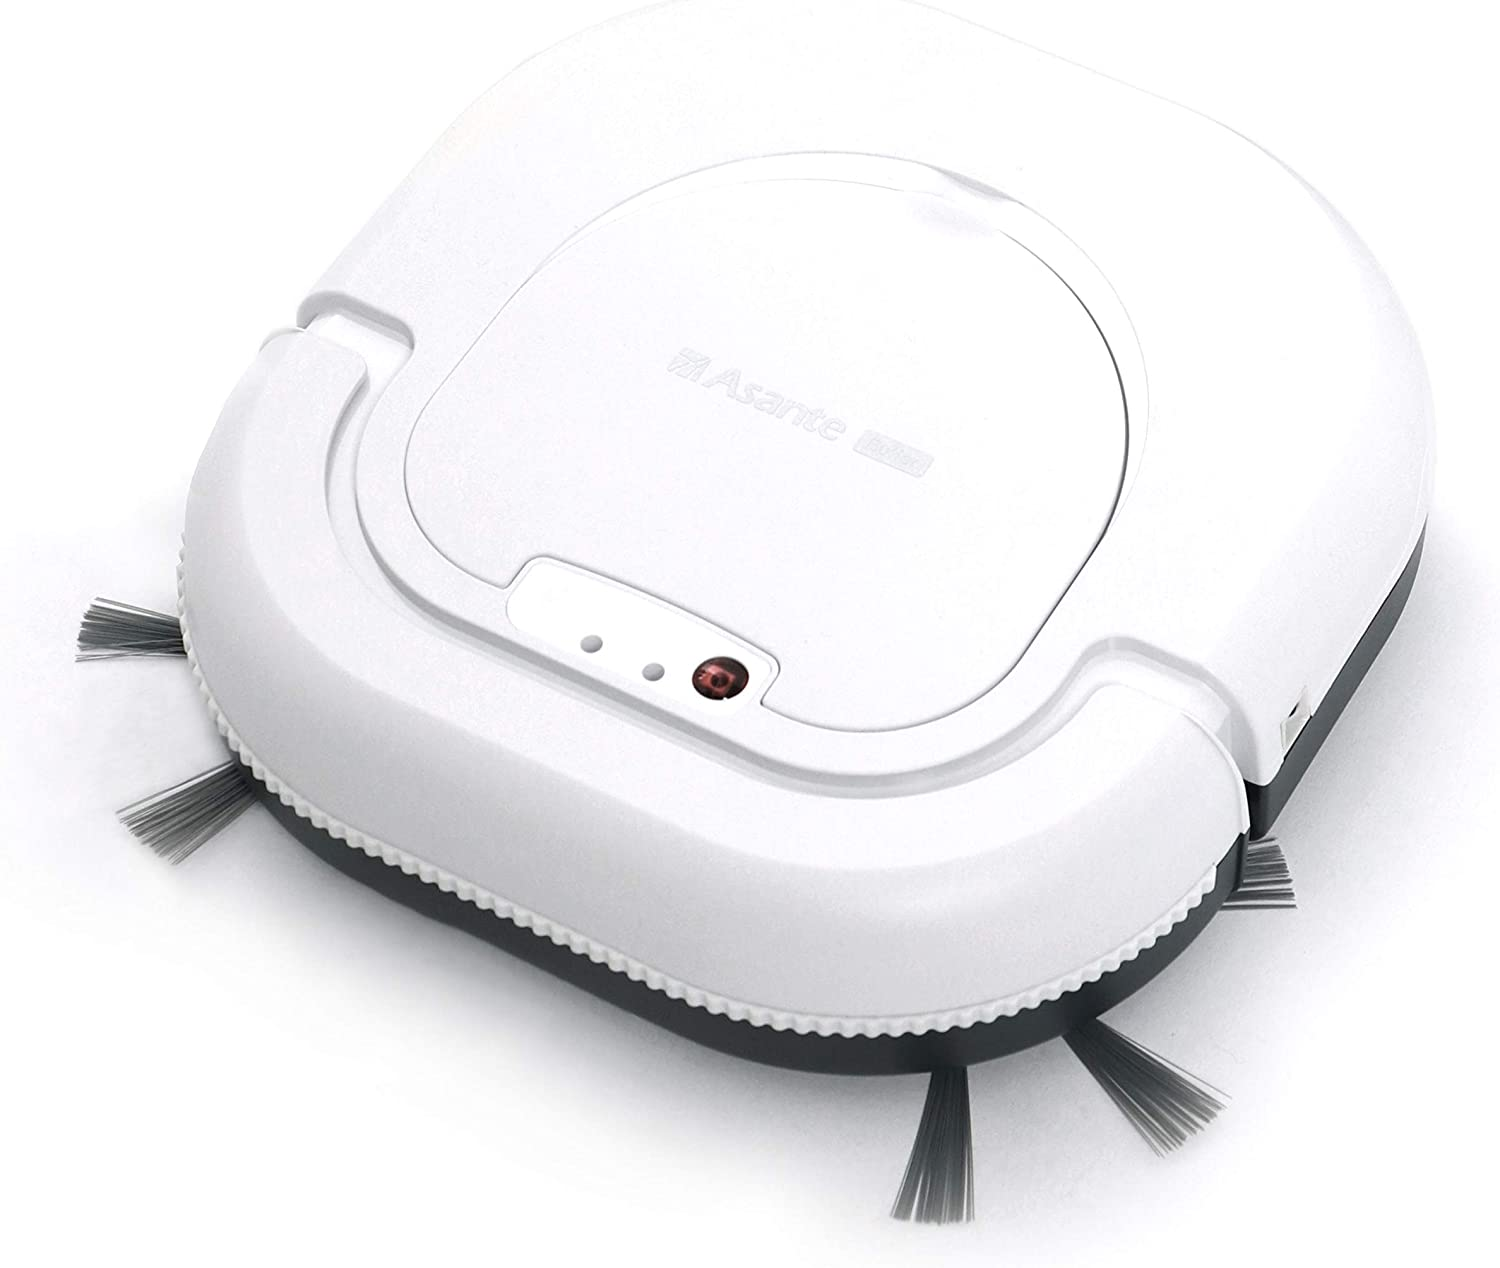 Asante Butler M1 Robot Vacuum Cleaner, Combined 2-Year Accessories, White